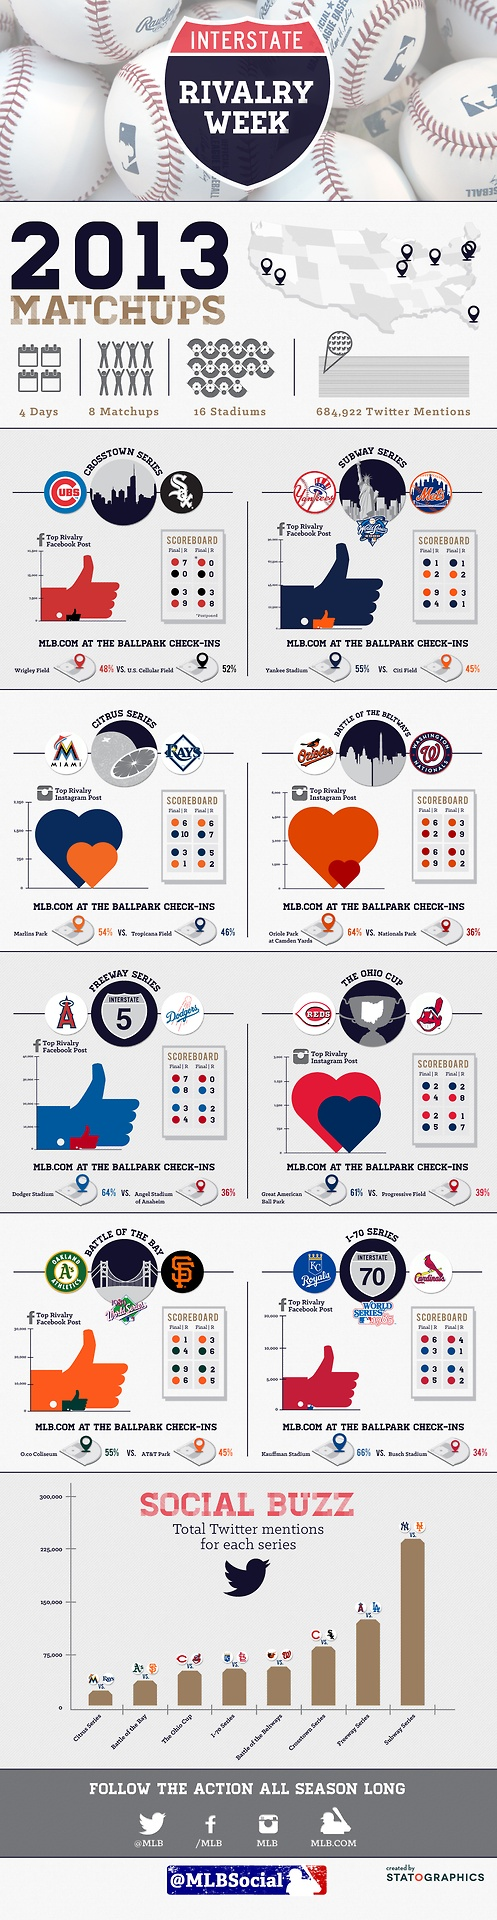 [INFOGRAPHIC]: 4 days. 8 matchups. 16 ballparks....